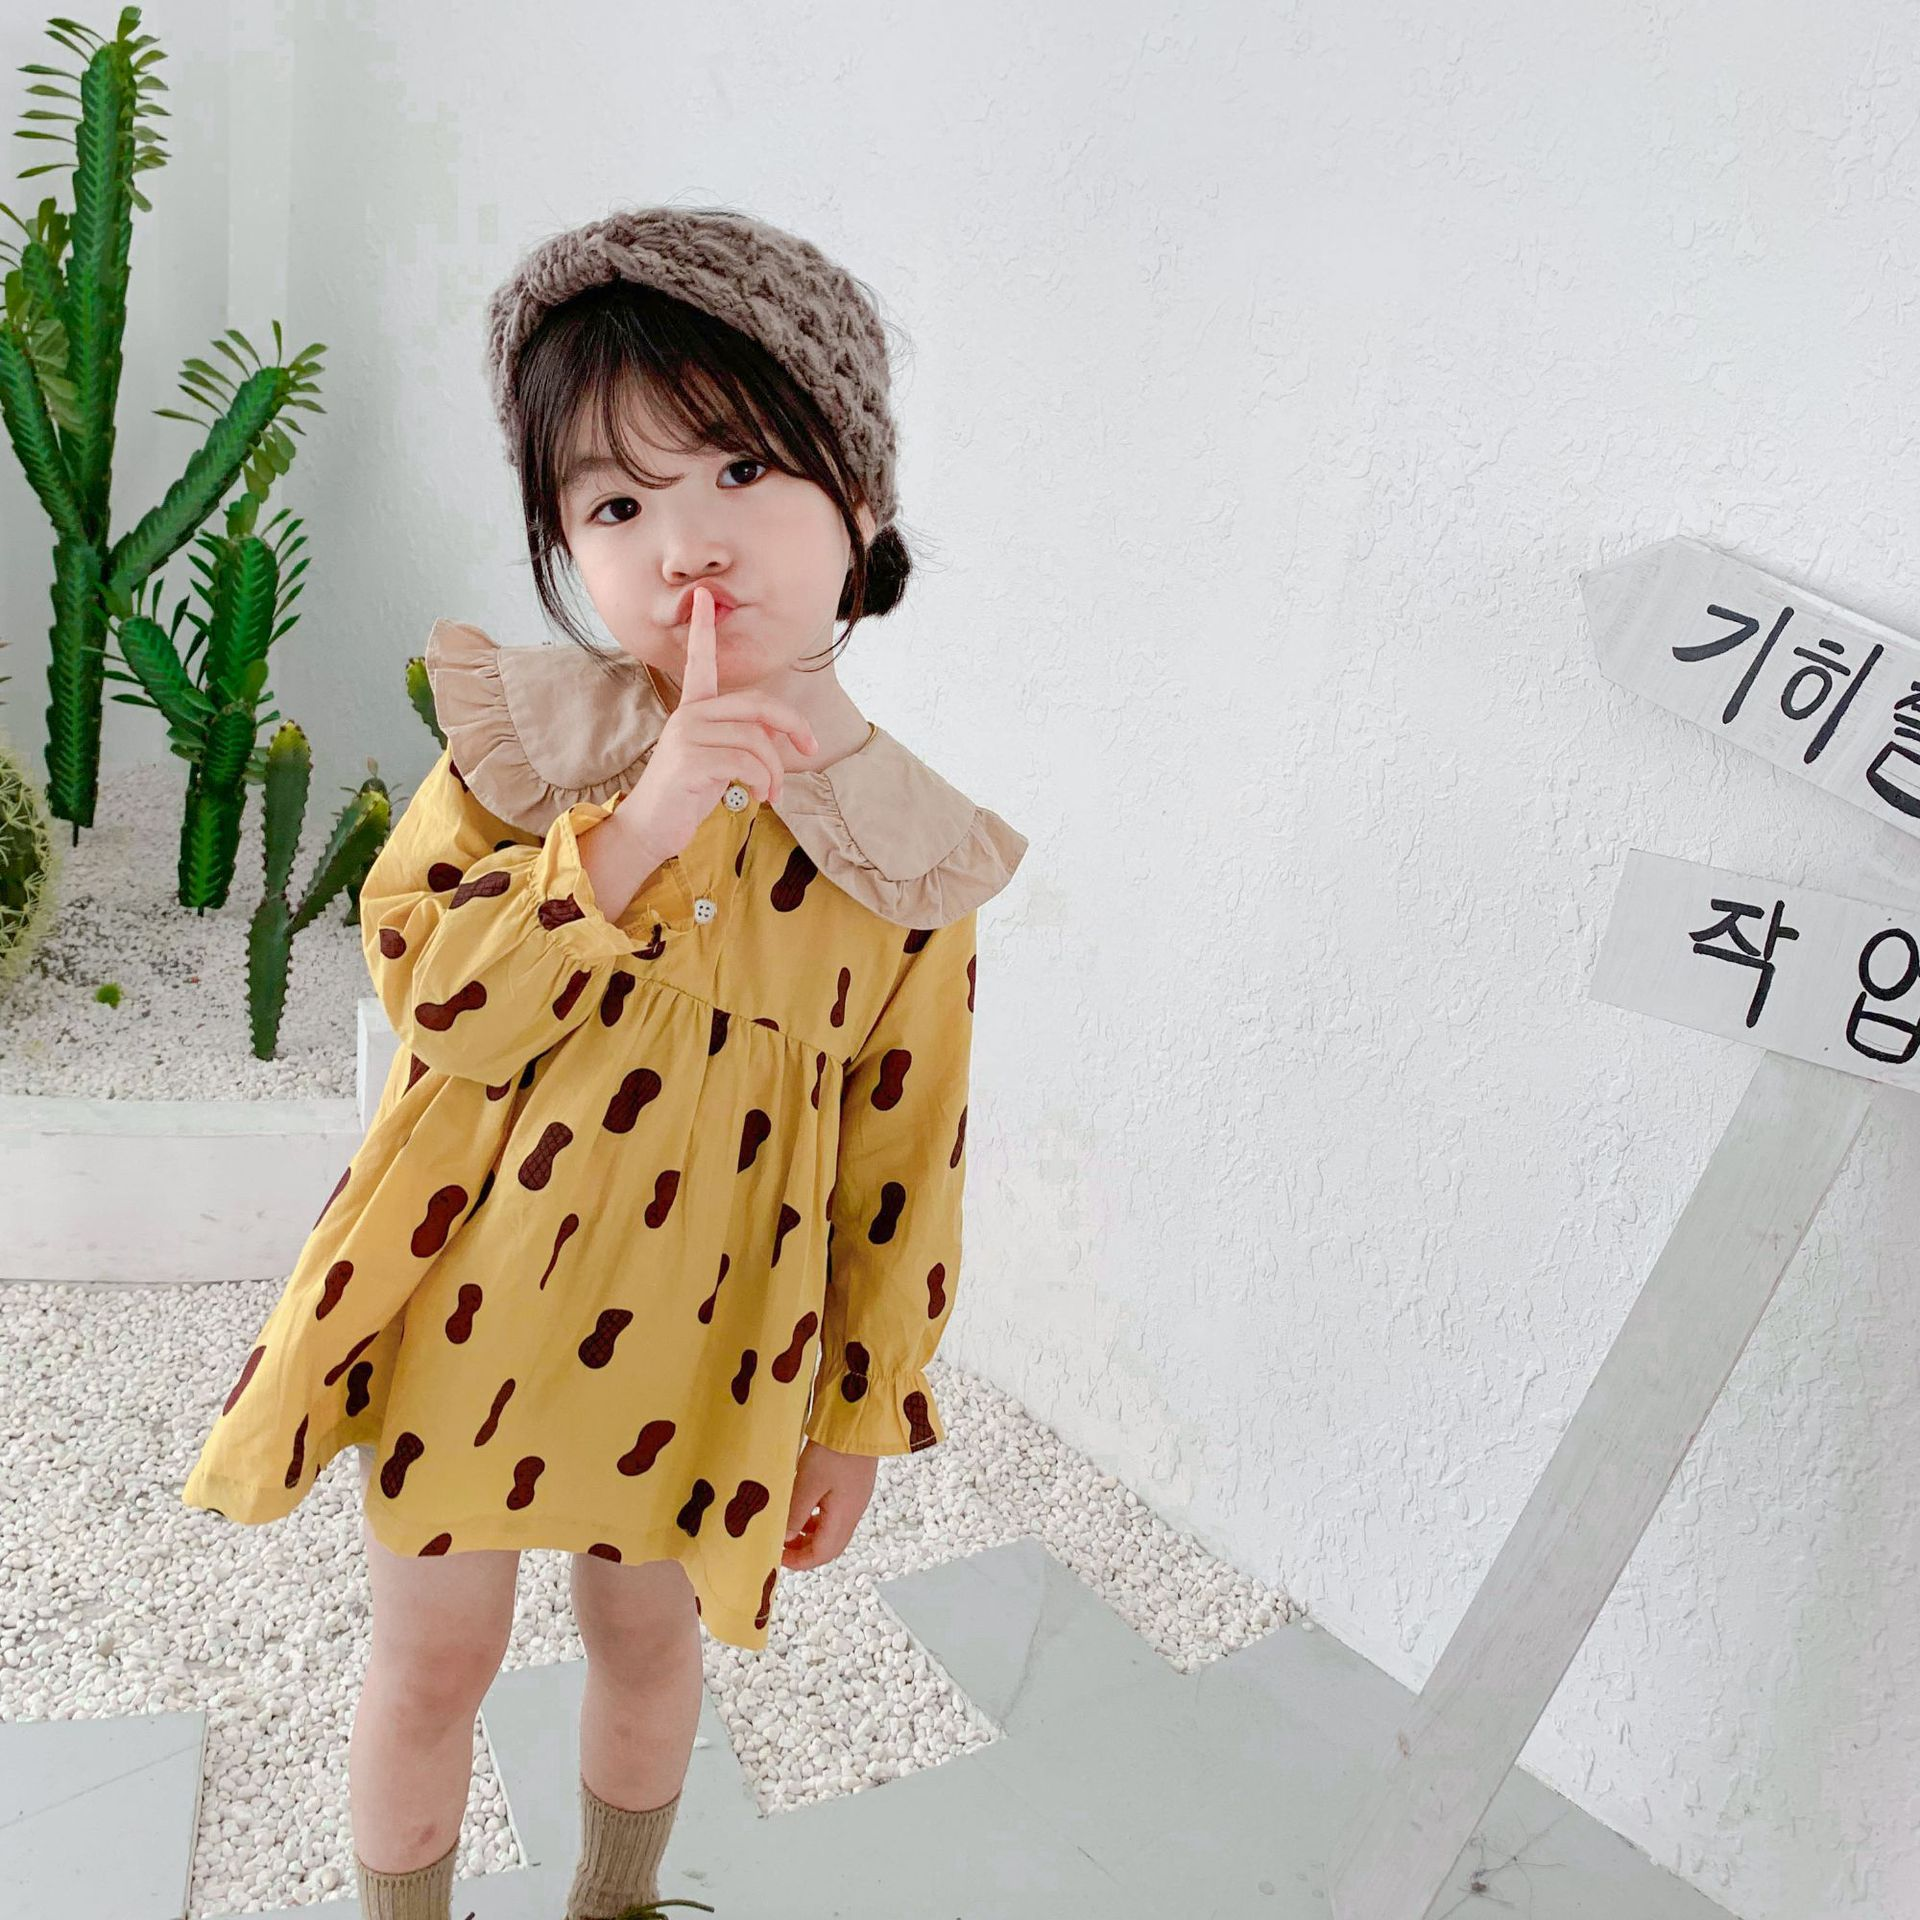 2019 Korean Hot Style Cute Peanut Print Baby Girls Fancy Long Sleeve Peter Pan Collar Dress